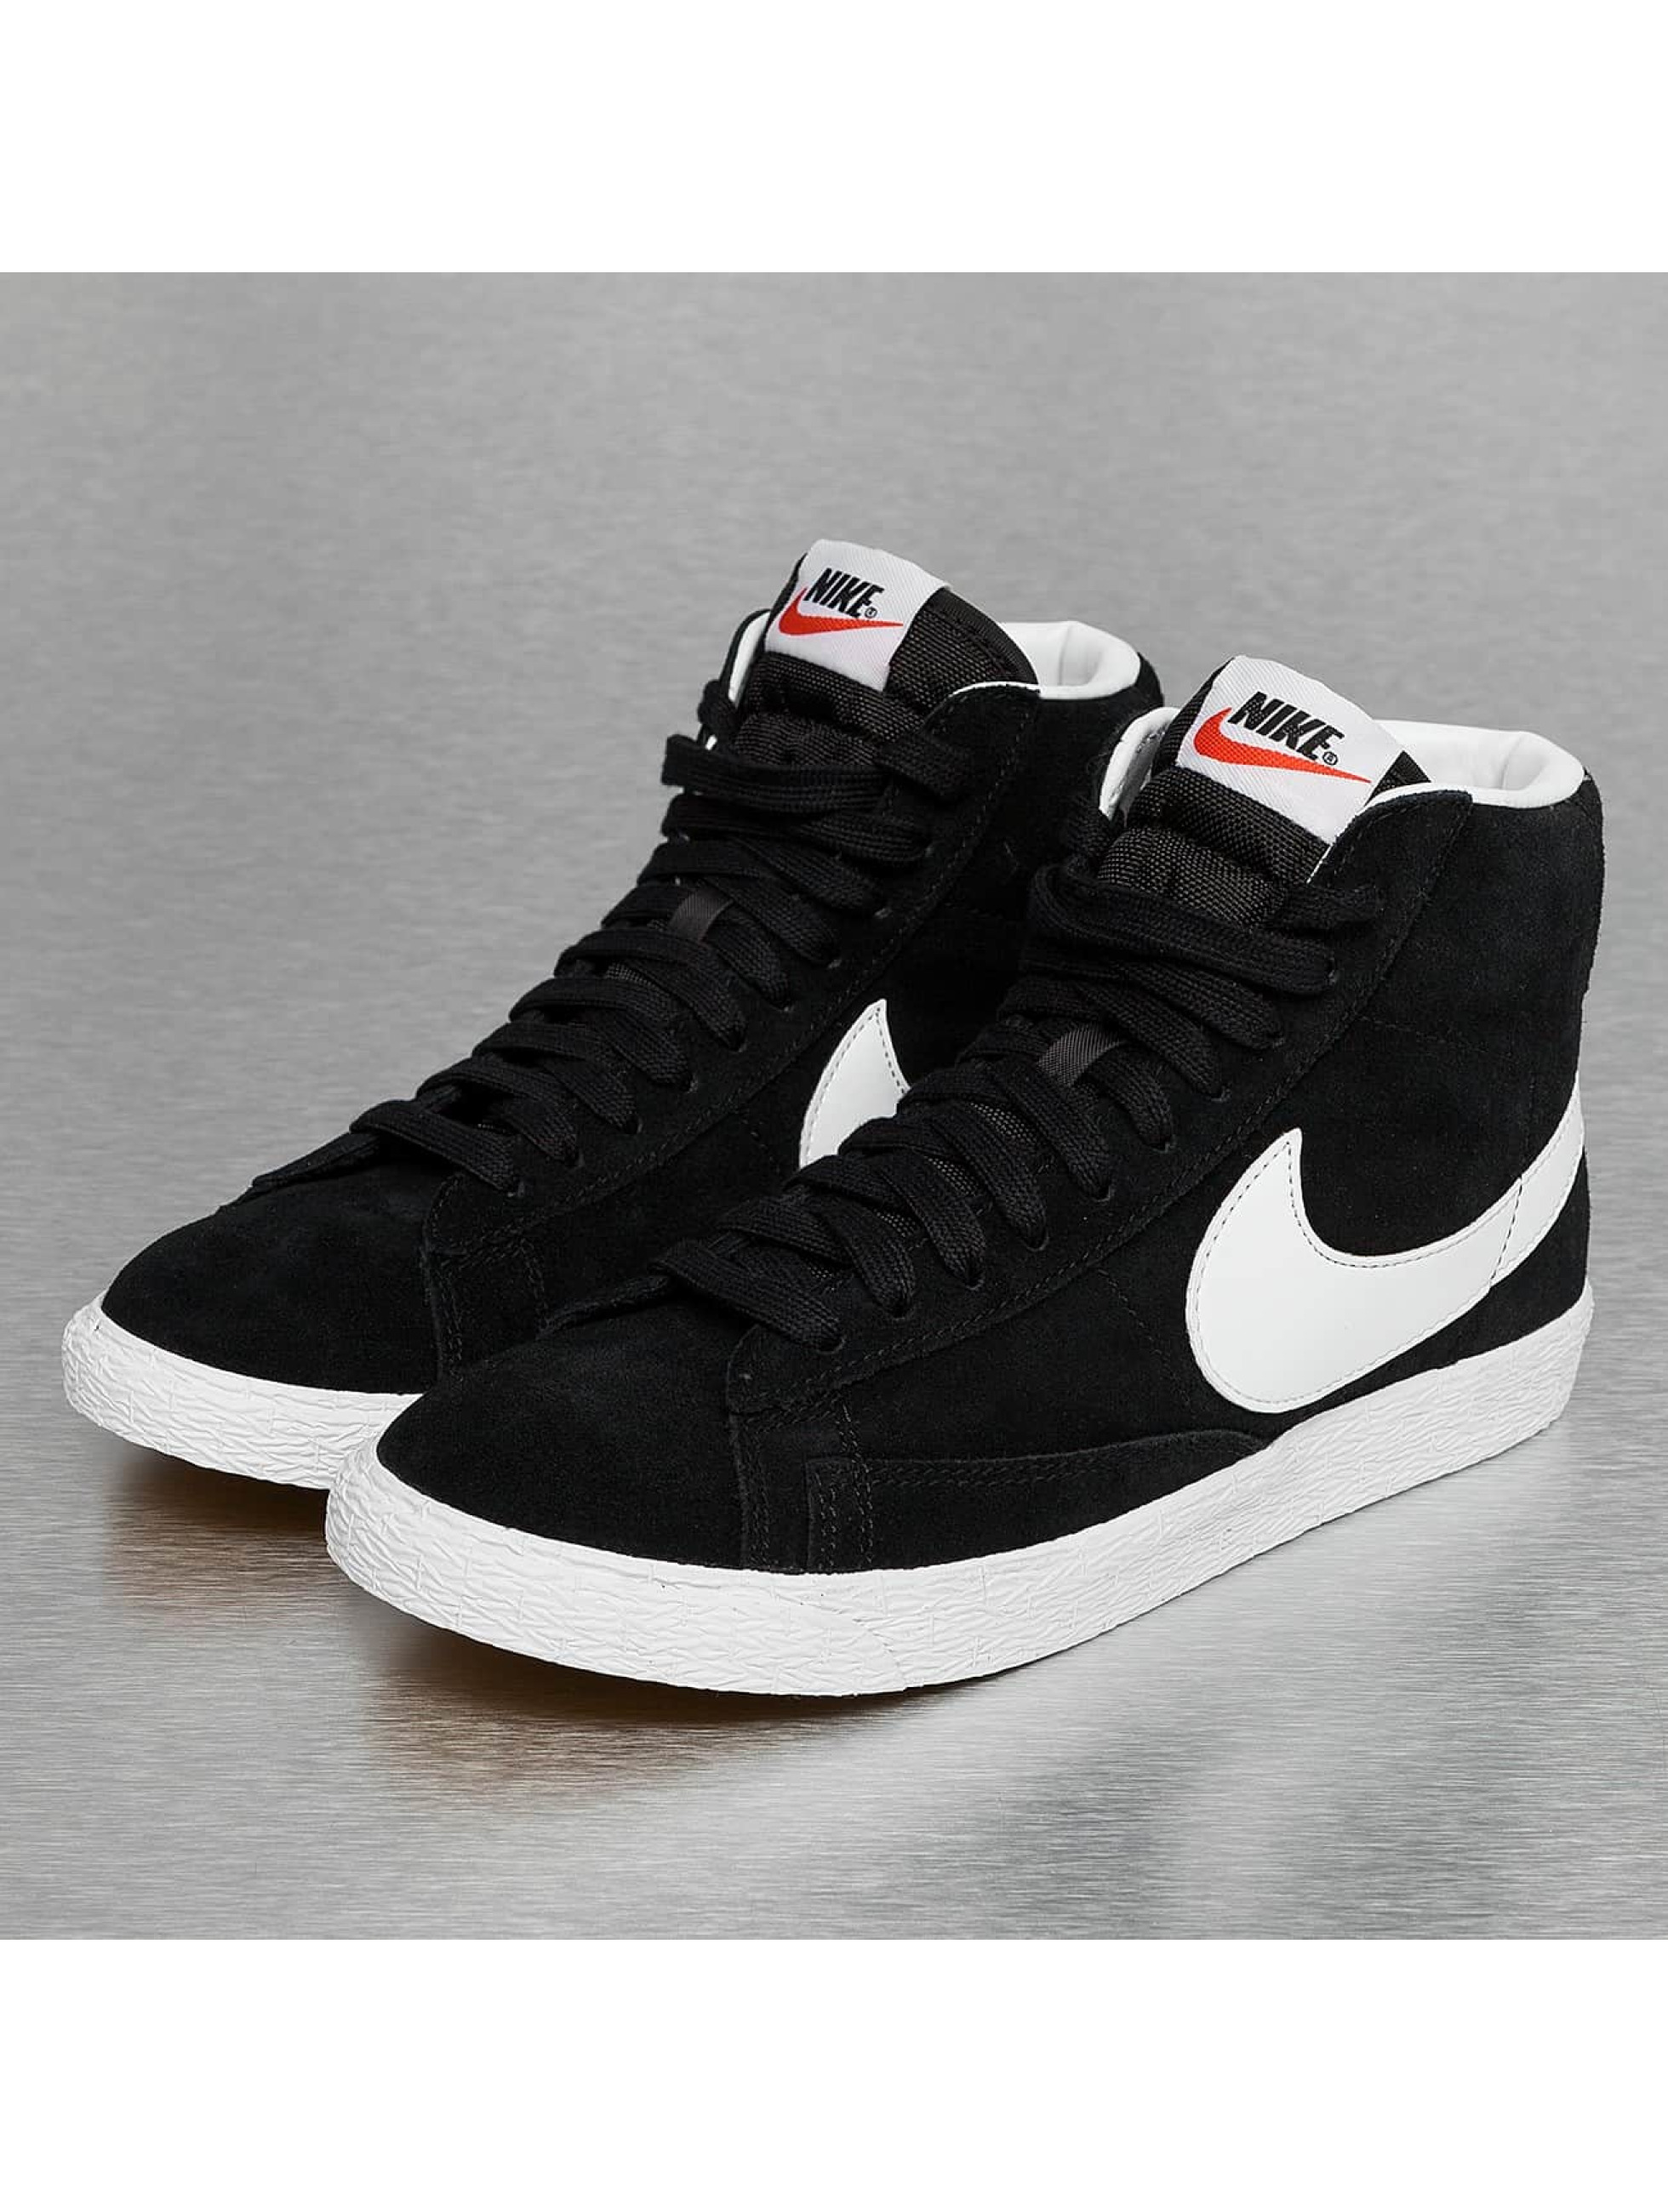 nike damen sneaker wmns blazer mid suede in schwarz 289578. Black Bedroom Furniture Sets. Home Design Ideas